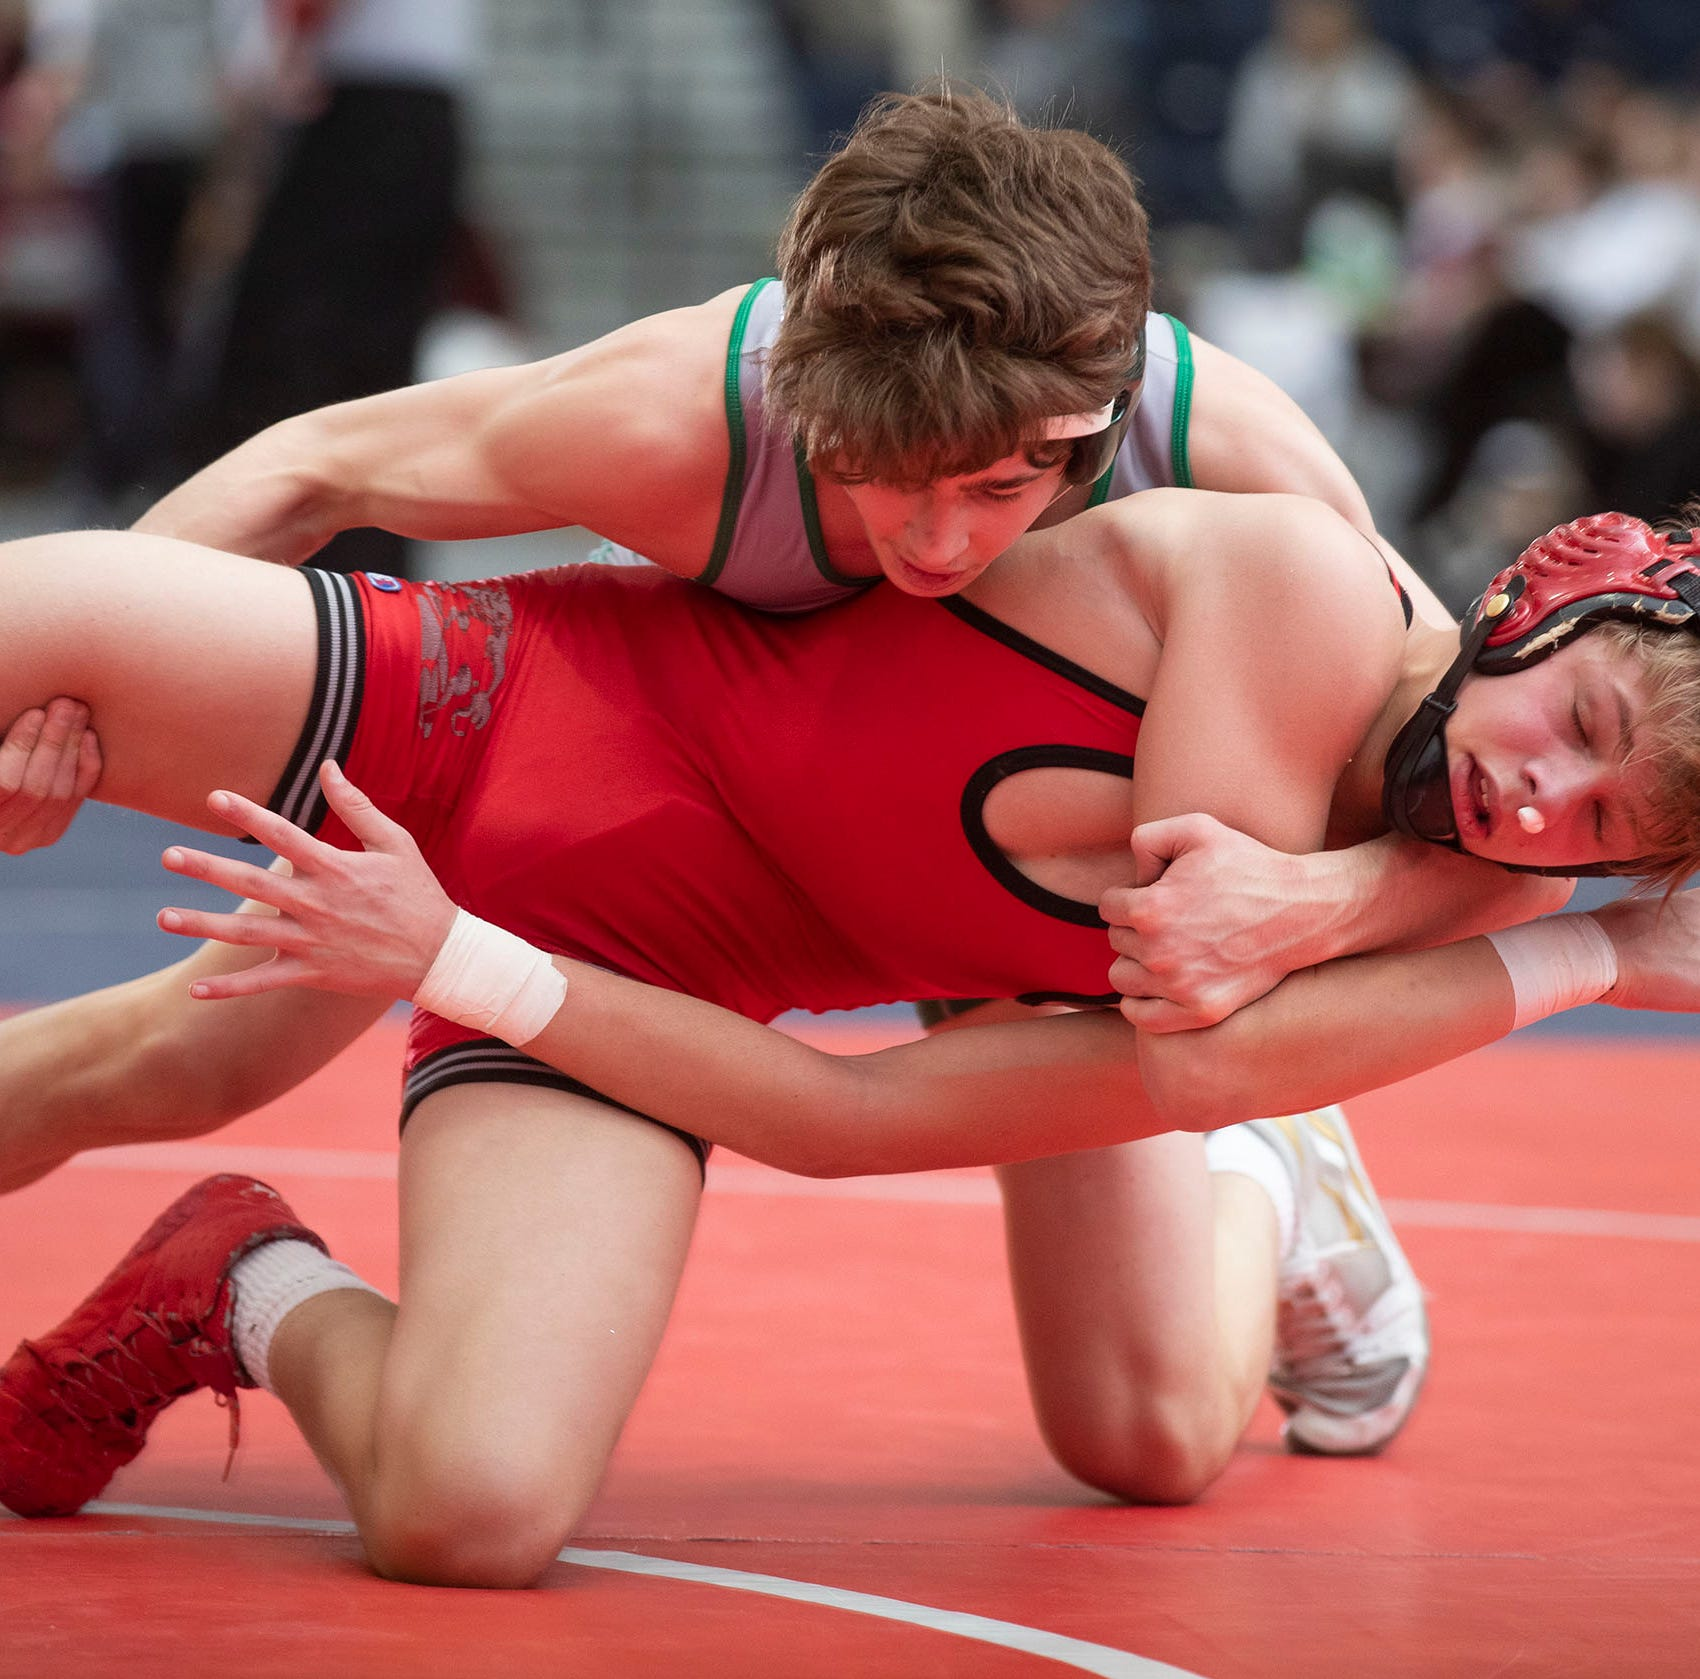 NJ wrestling: Complete District 13, 14, 15, 16, 17, 18, 19 and 20 results